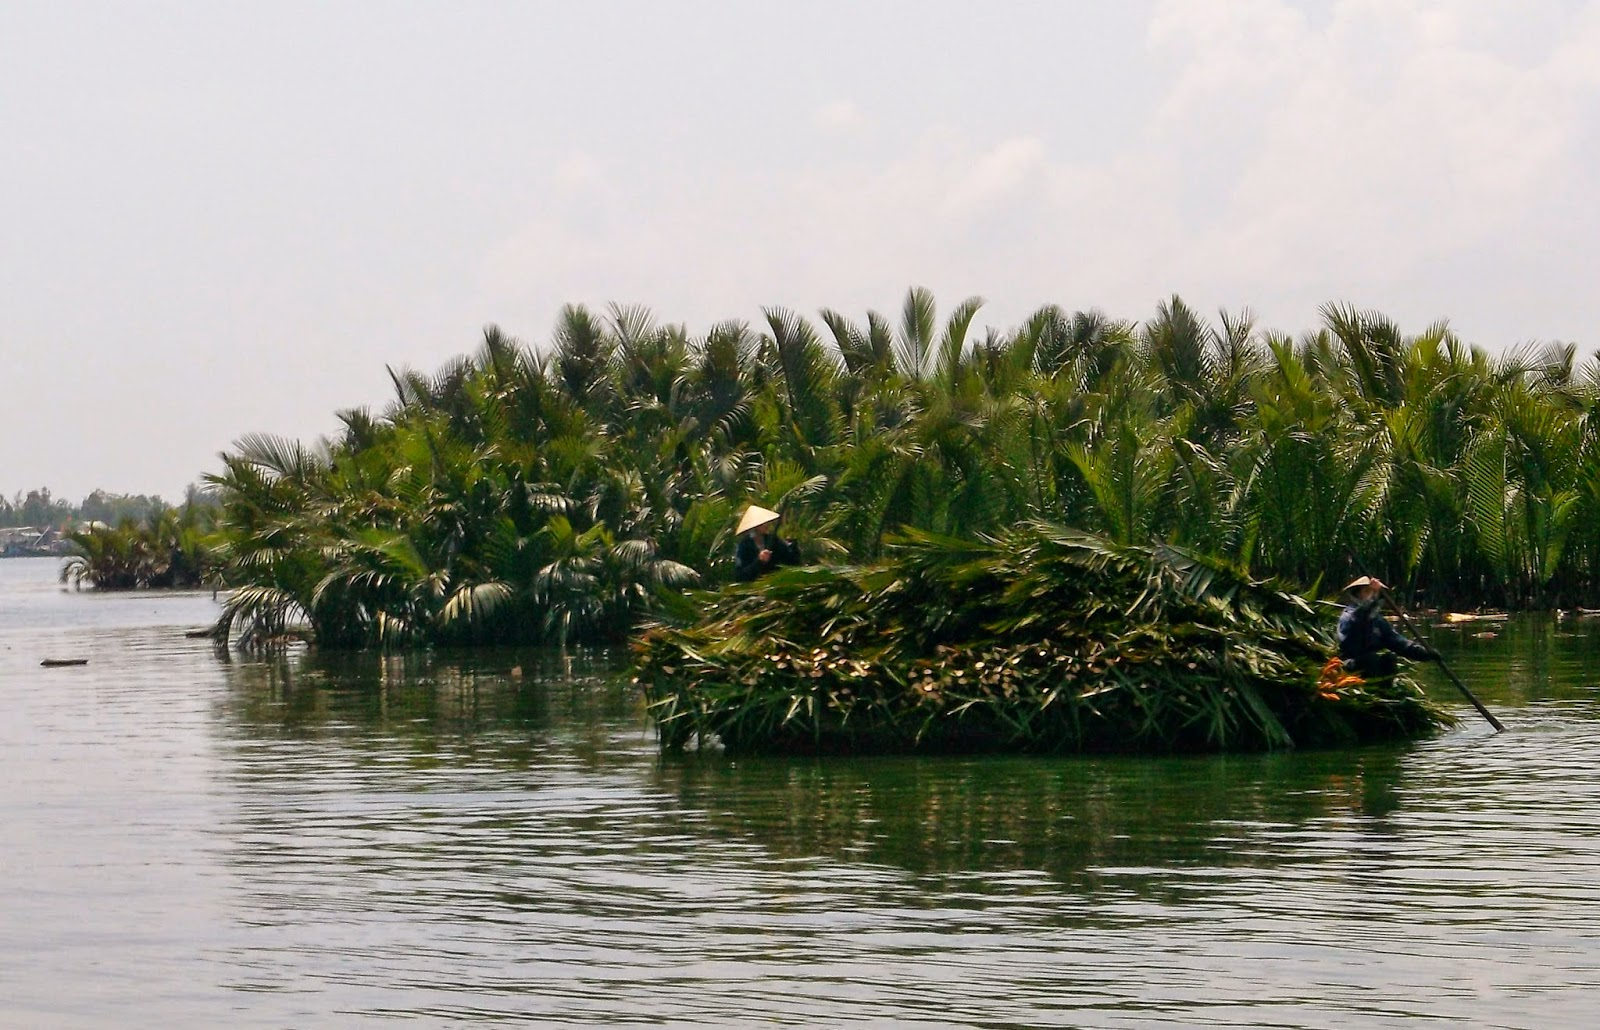 A barge full of palms, soon to be a roof... 'Palm Paradise'...